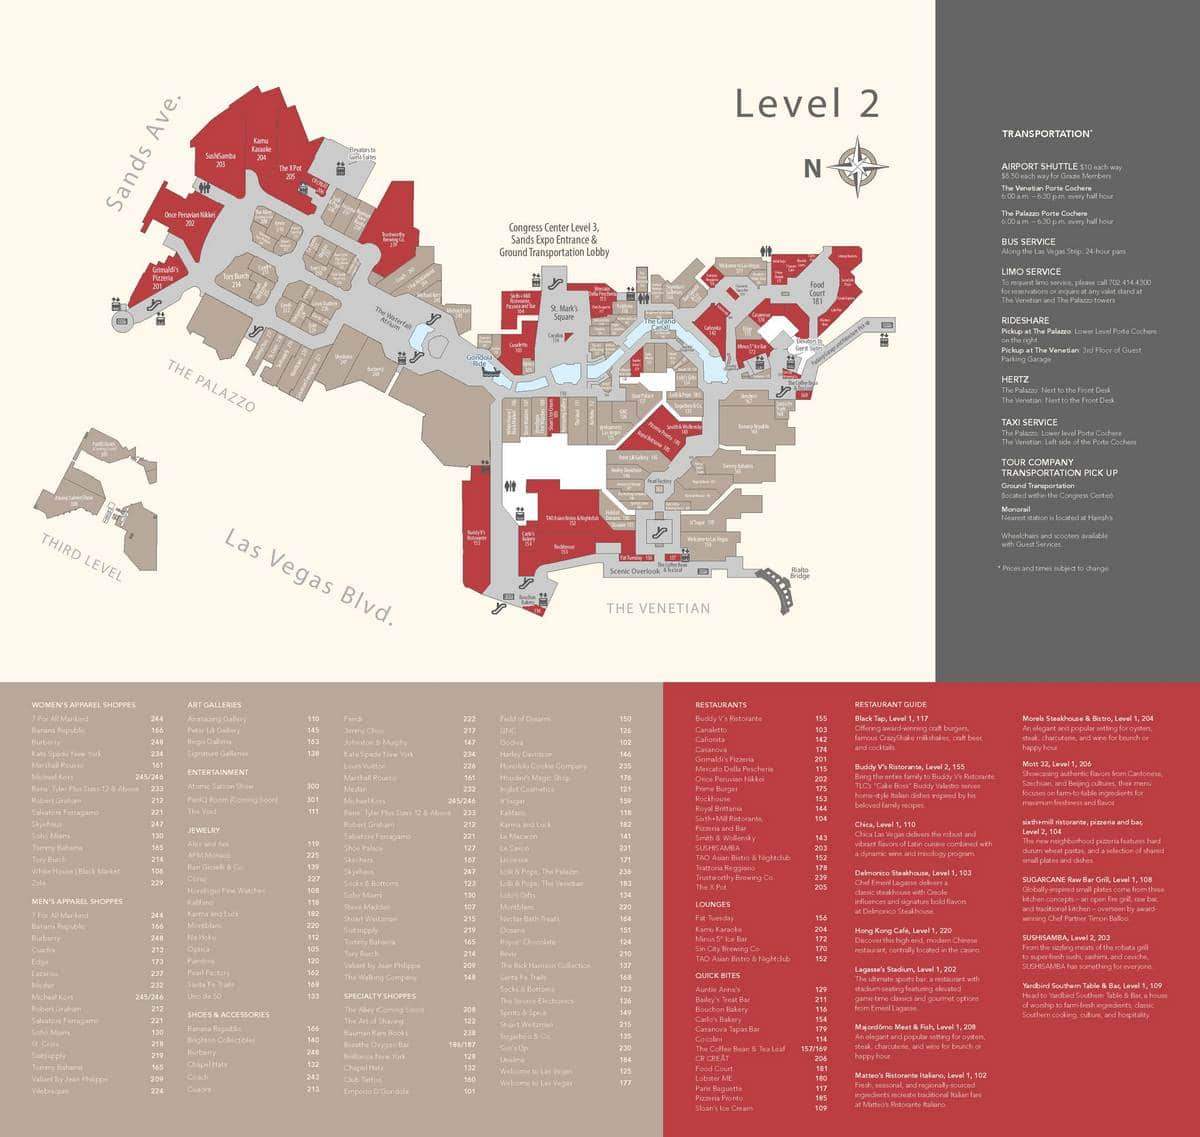 Venetian Las Vegas Property Map Level 2